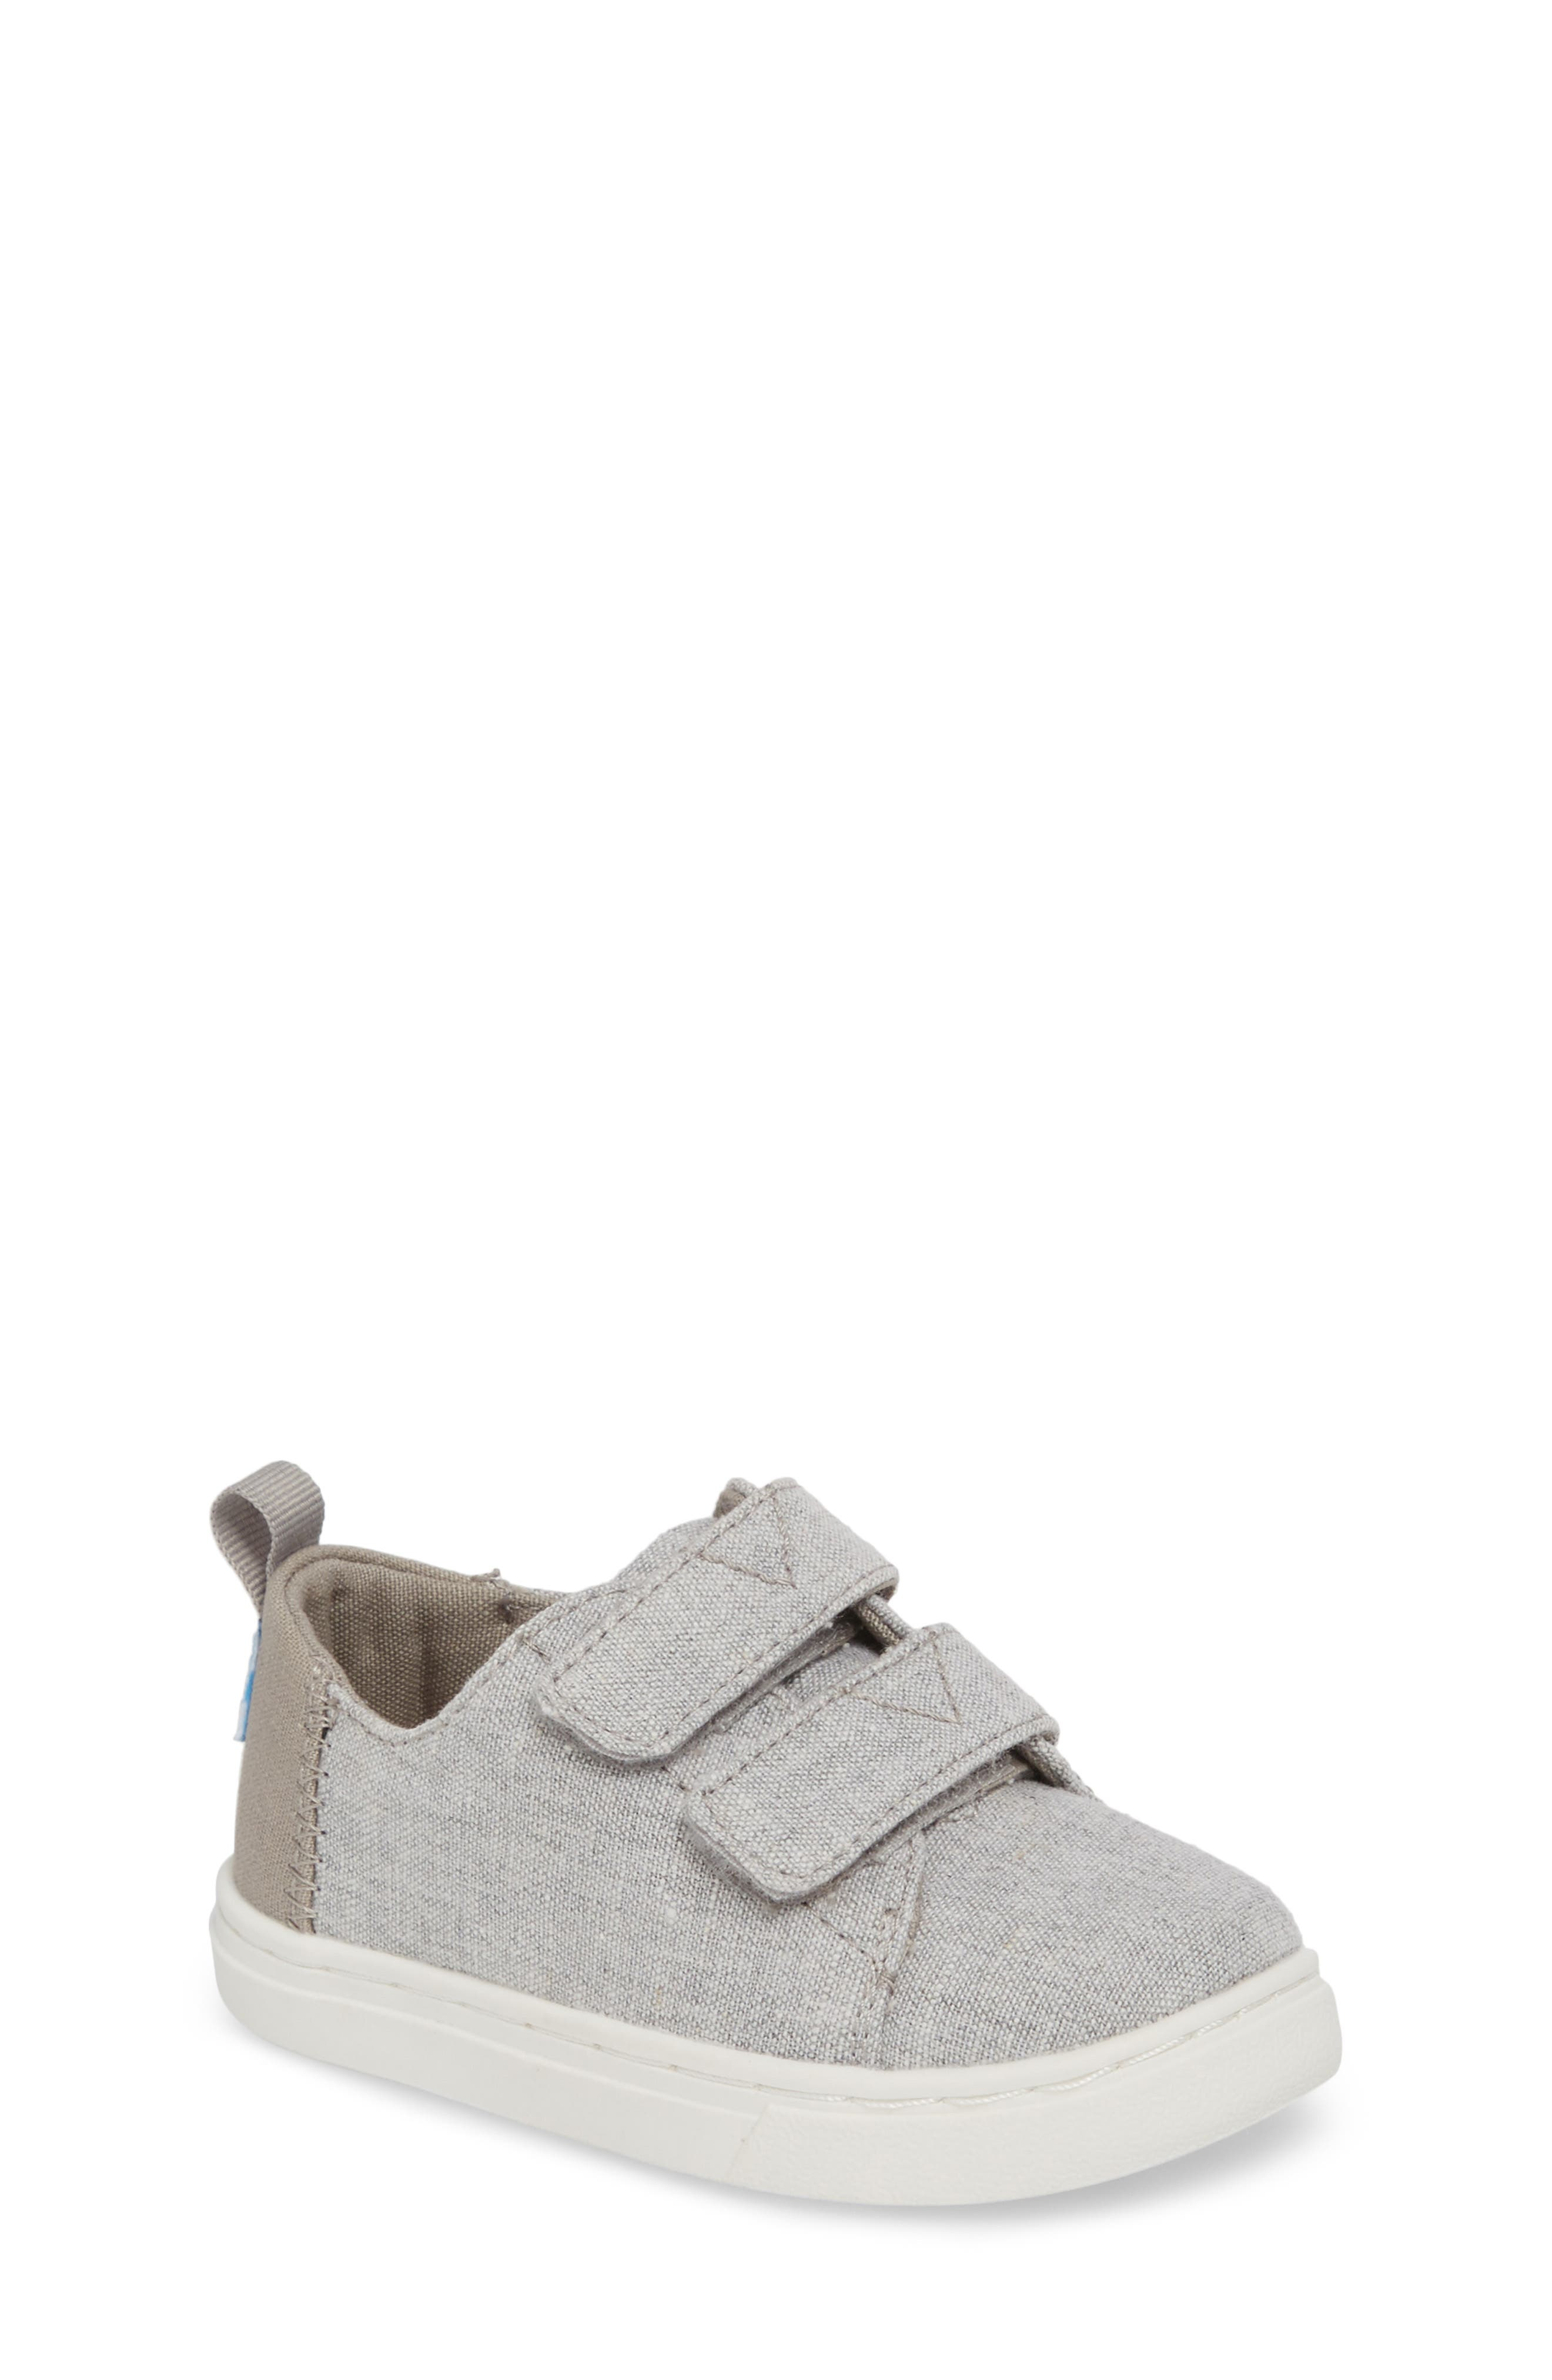 Lenny Sneaker,                         Main,                         color, DRIZZLE GREY CHAMBRAY